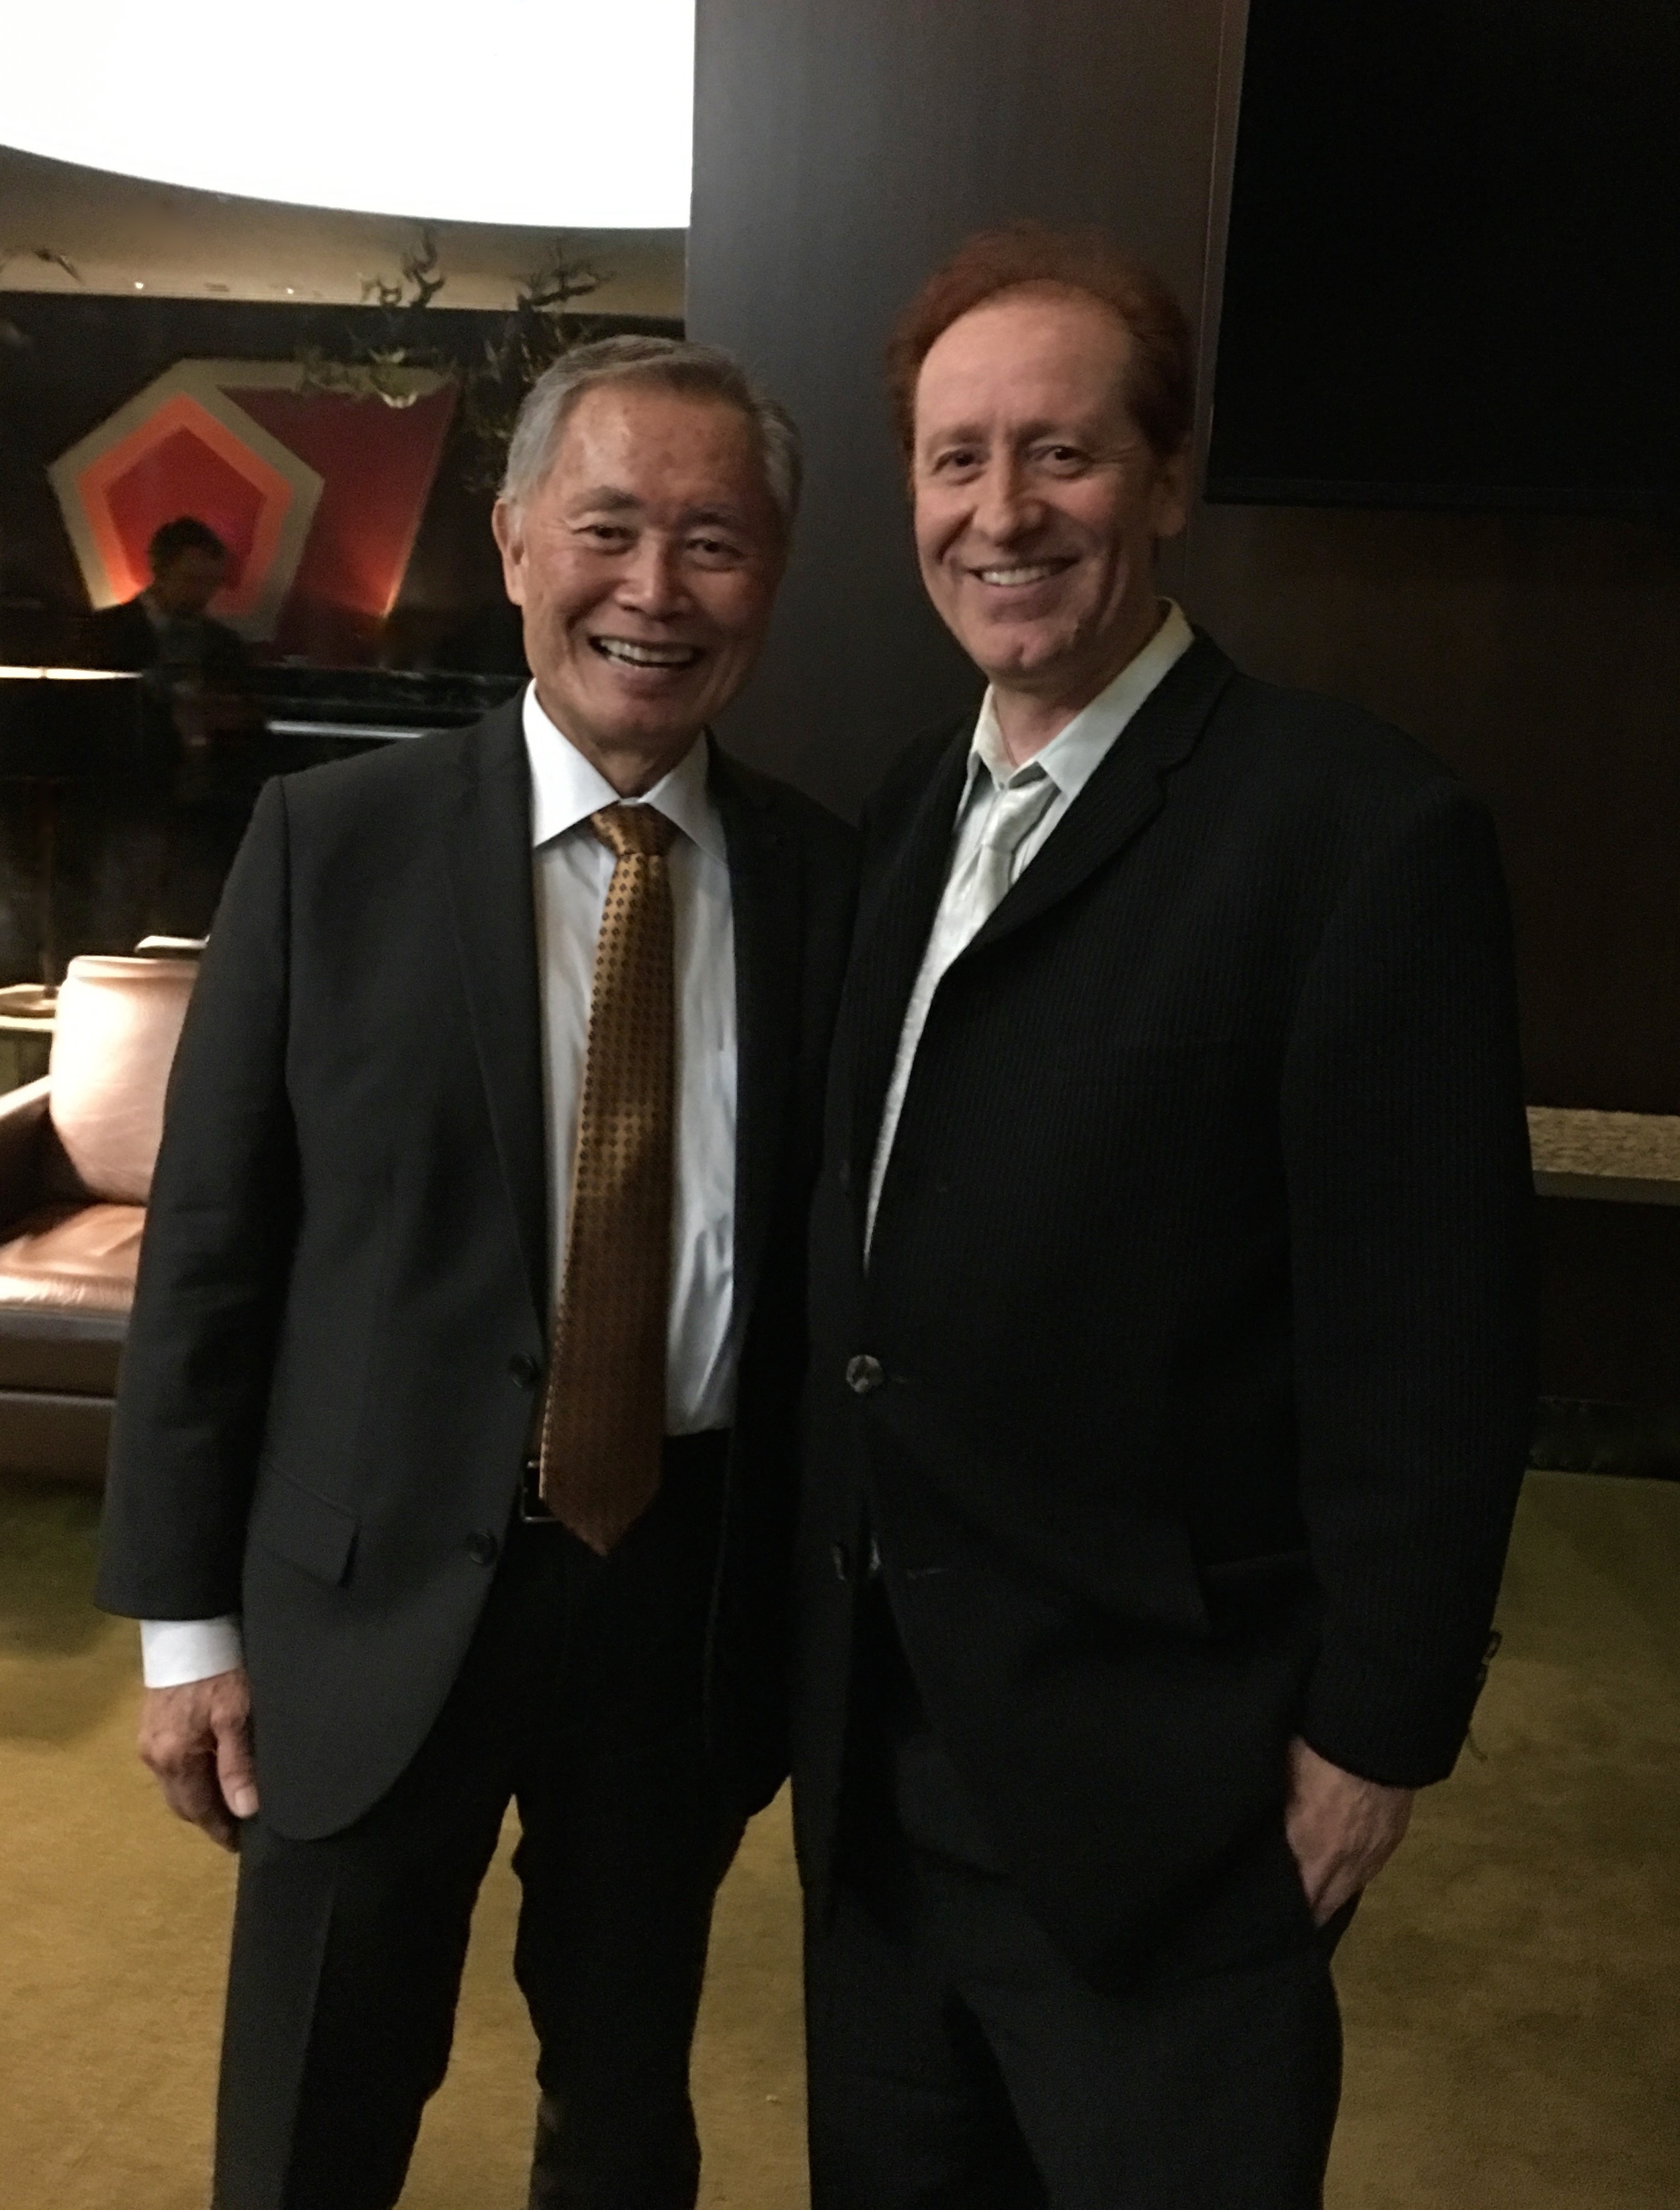 Craig, who played Captain Kirk's nephew, Peter James Kirk, catches up with his crew-mate, Sulu, played by George Takei.